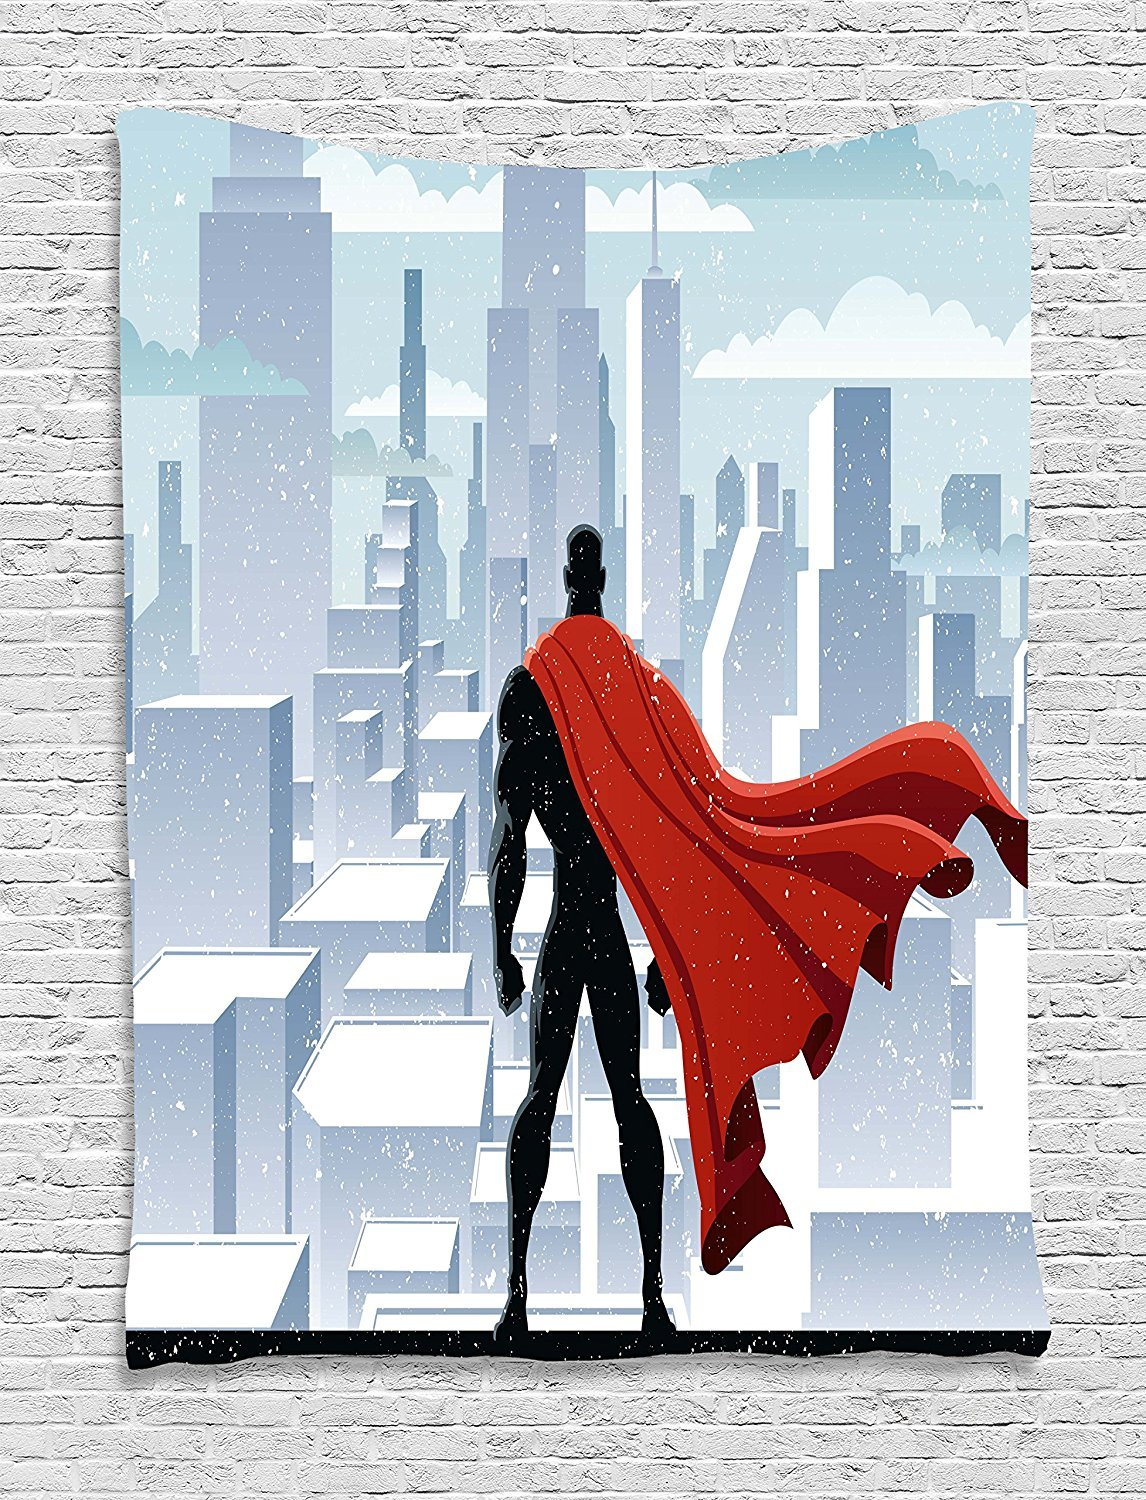 Superhero Tapestry, Hero Watching over City in Snowy Winter Savior Justice Urban Design, Wall Hanging for Bedroom Living Room Dorm, 60 W X 80 L Inches, Pale Blue Orange Black